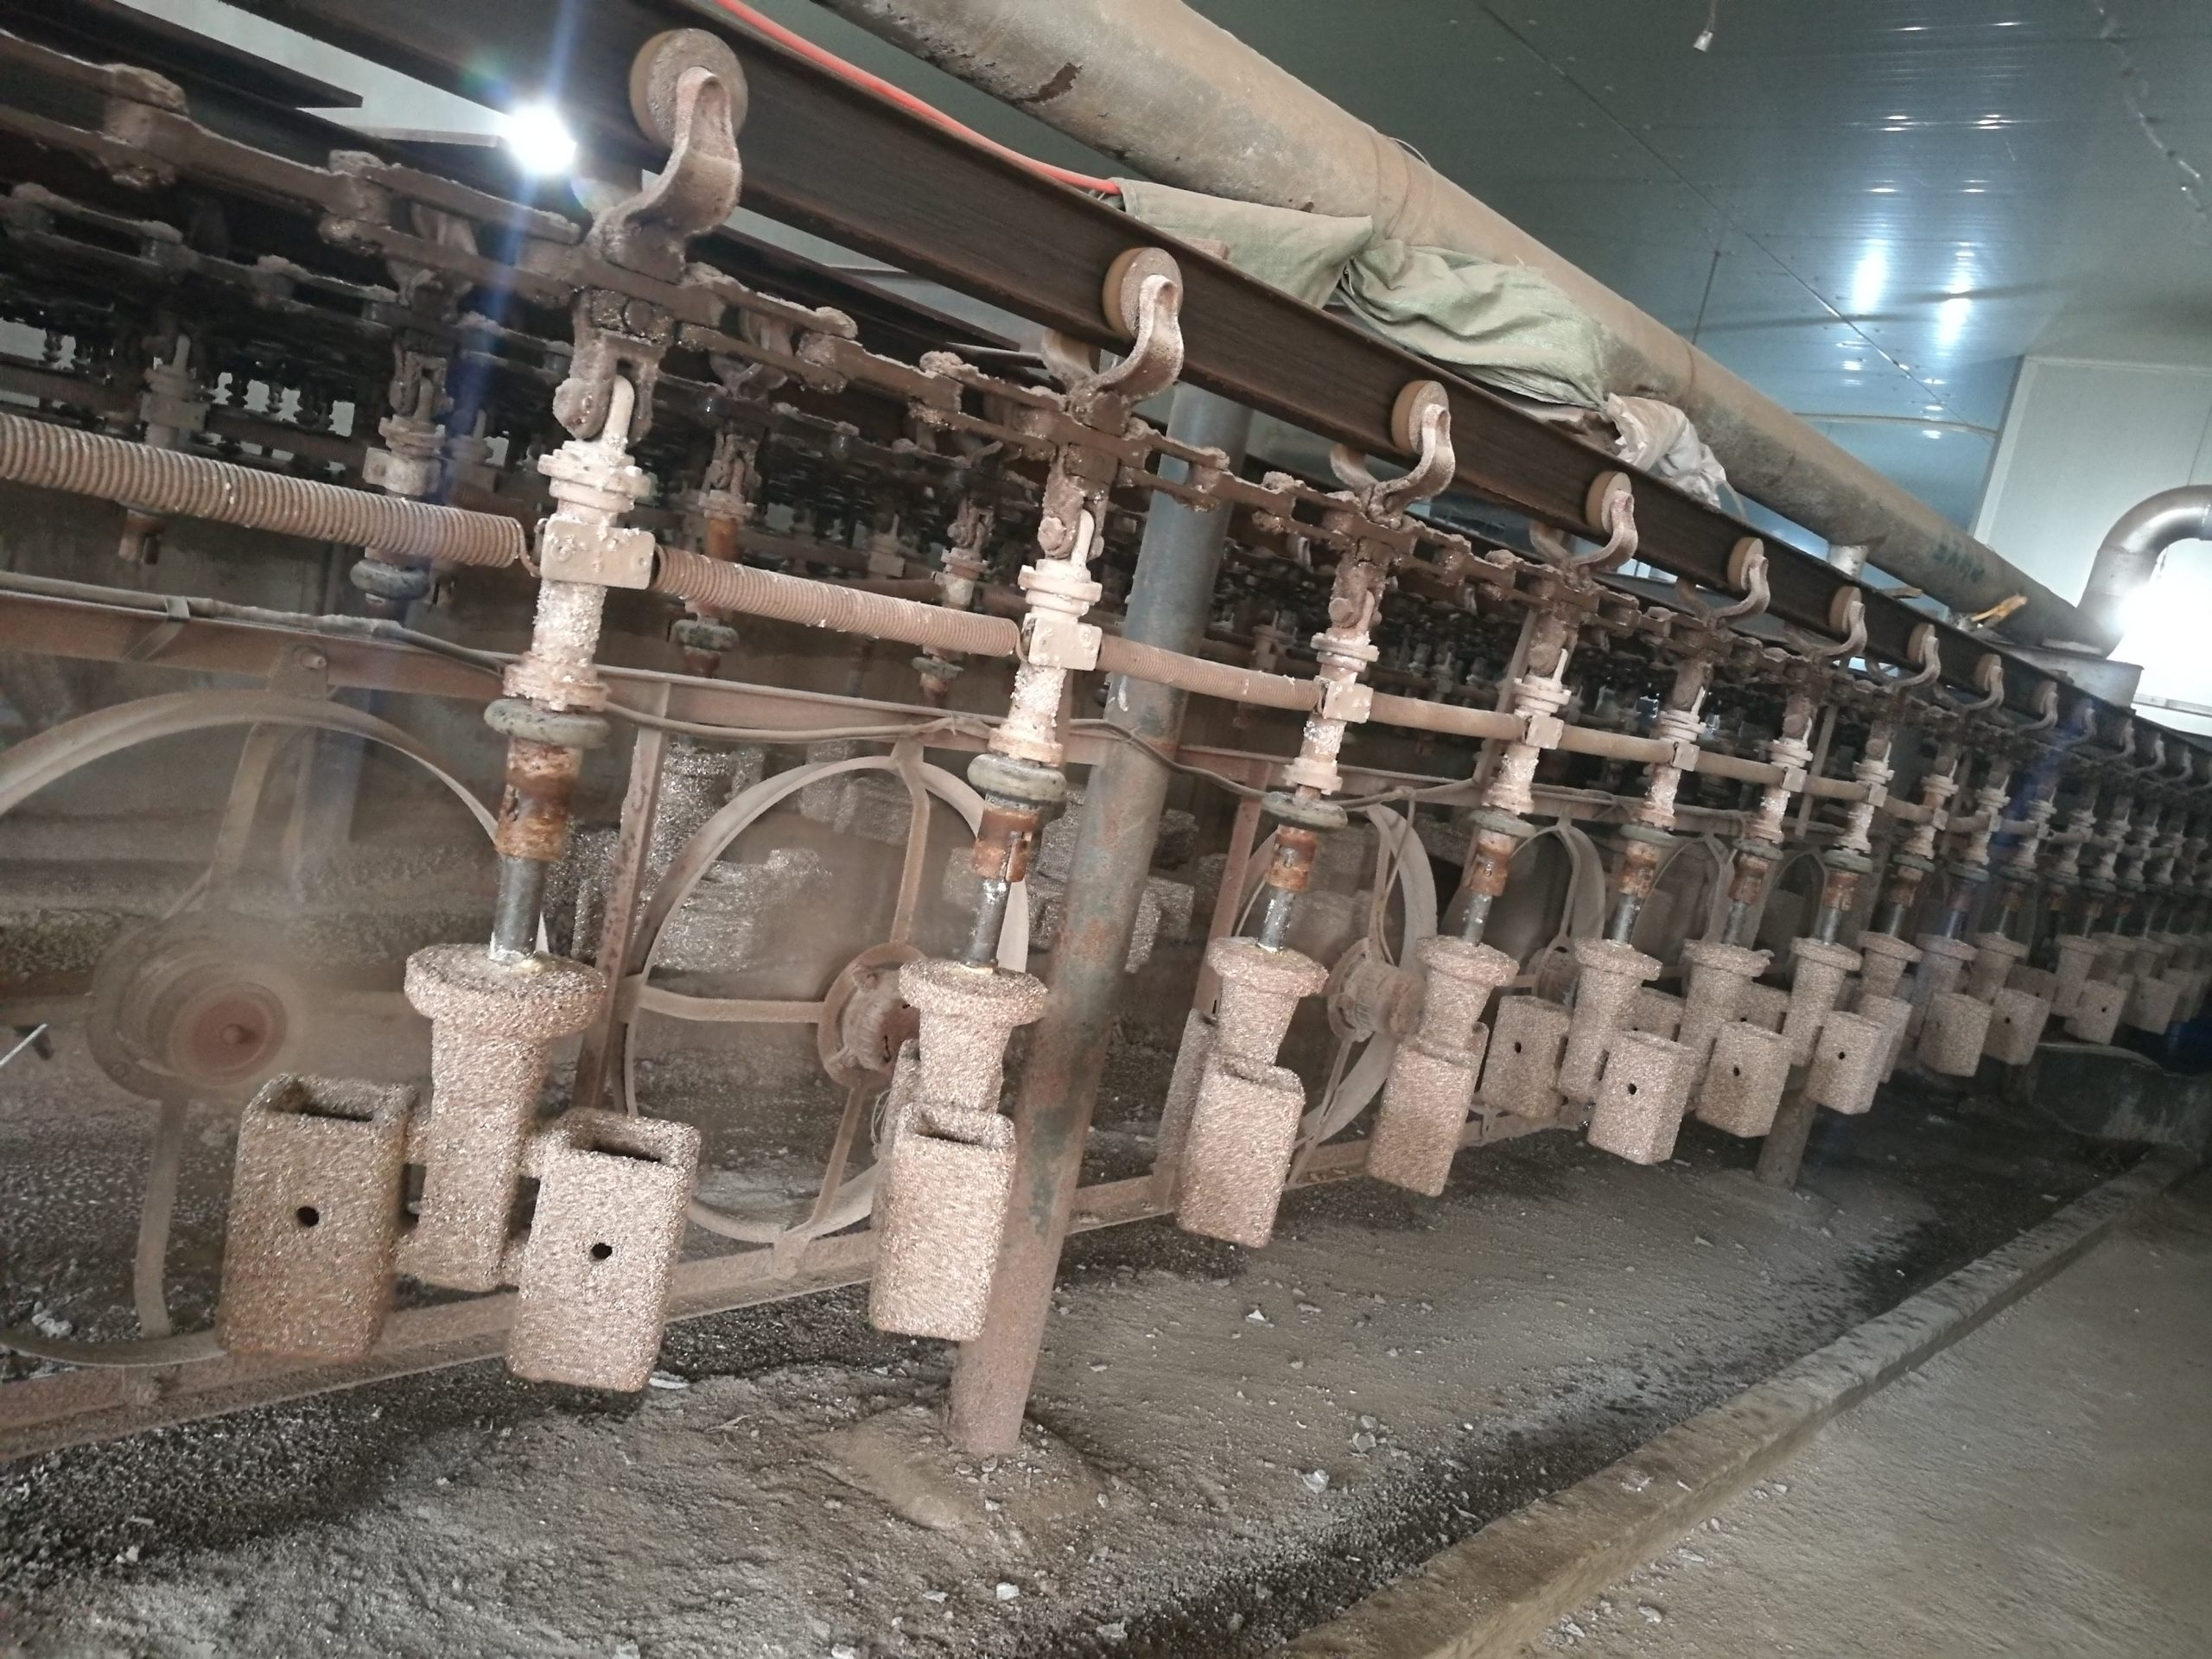 Where-can-I-customize-high-quality-and-high-precision-metal-castings-You-must-know-the-cost-effective-foundry-processing-factory